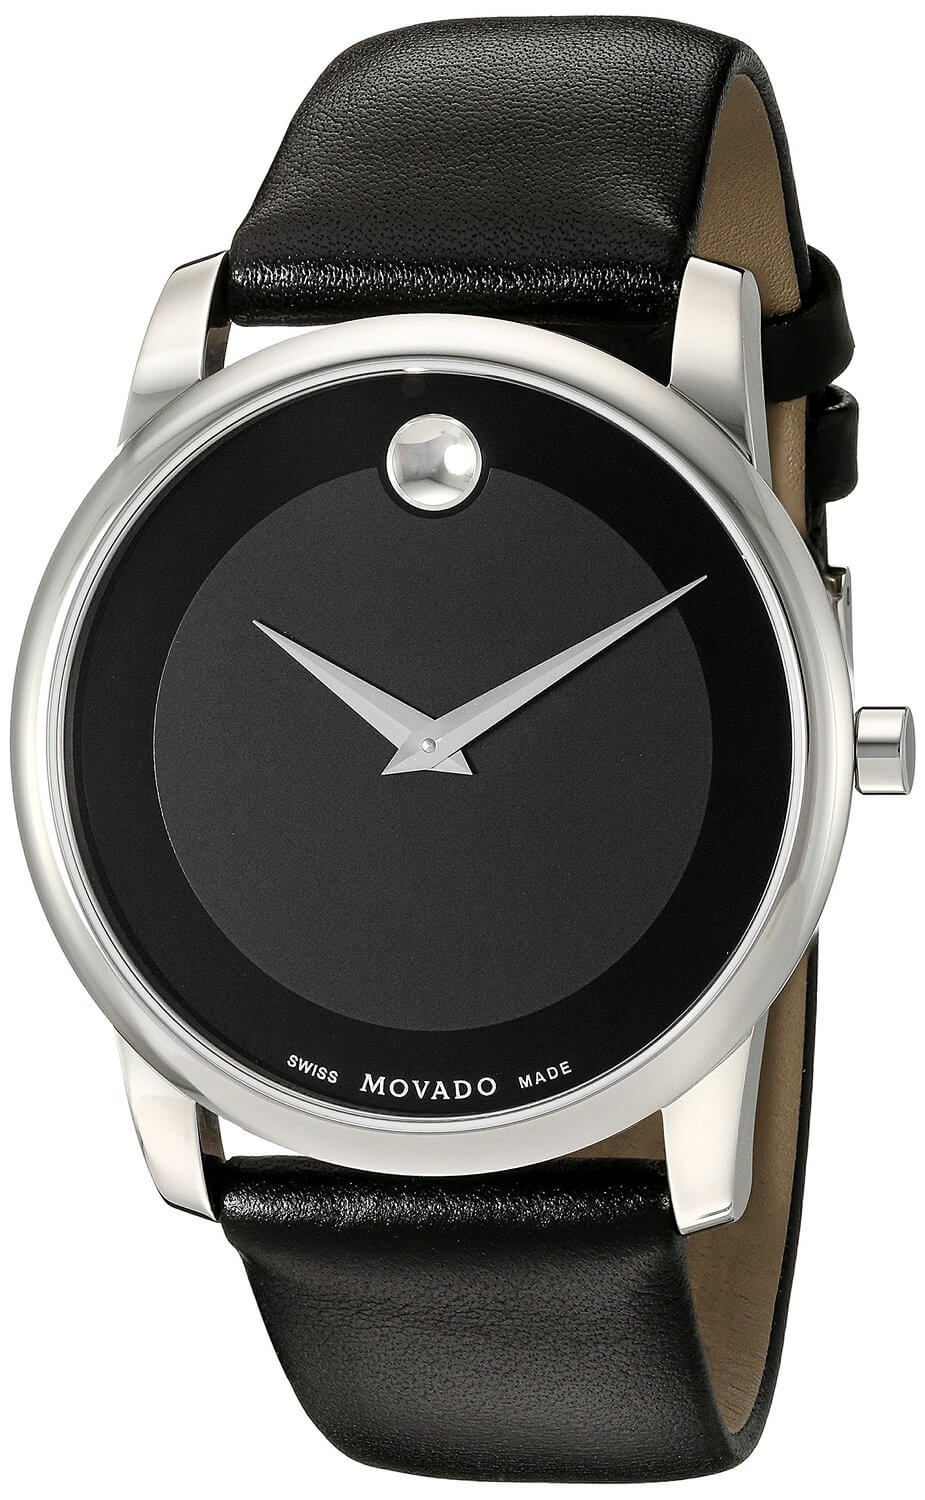 Movado museum watch review automatic watches for men for Movado kinetic